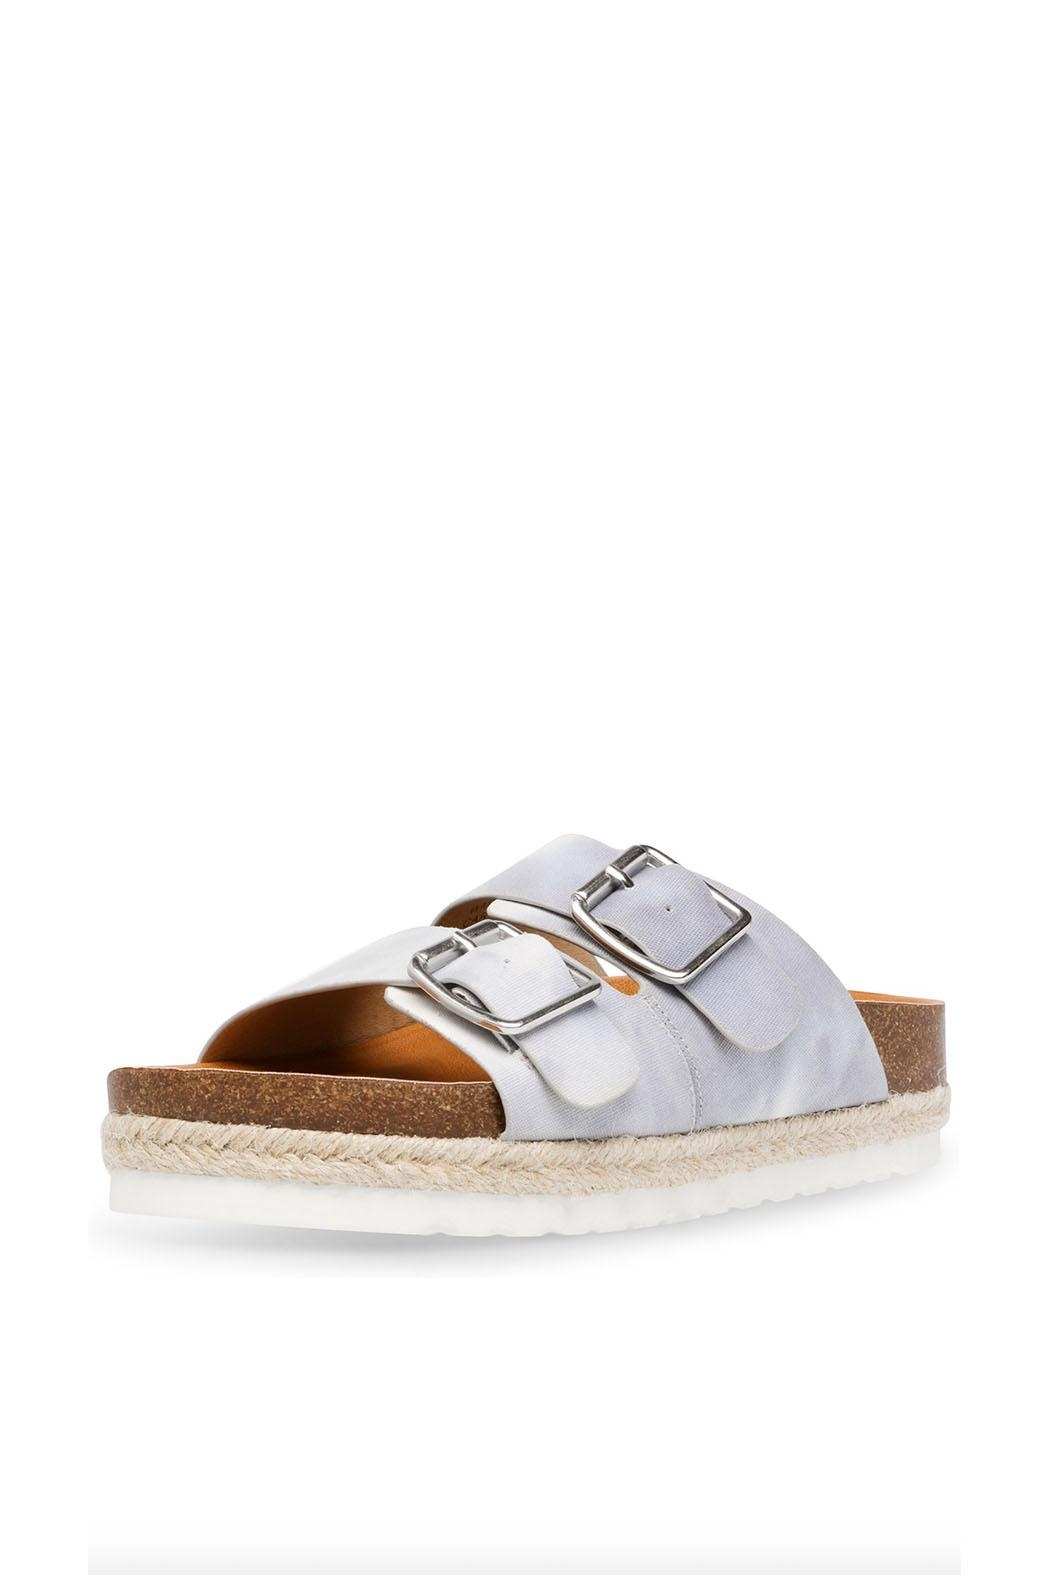 DV by Dolce Vita Carther Sandal - Back Cropped Image